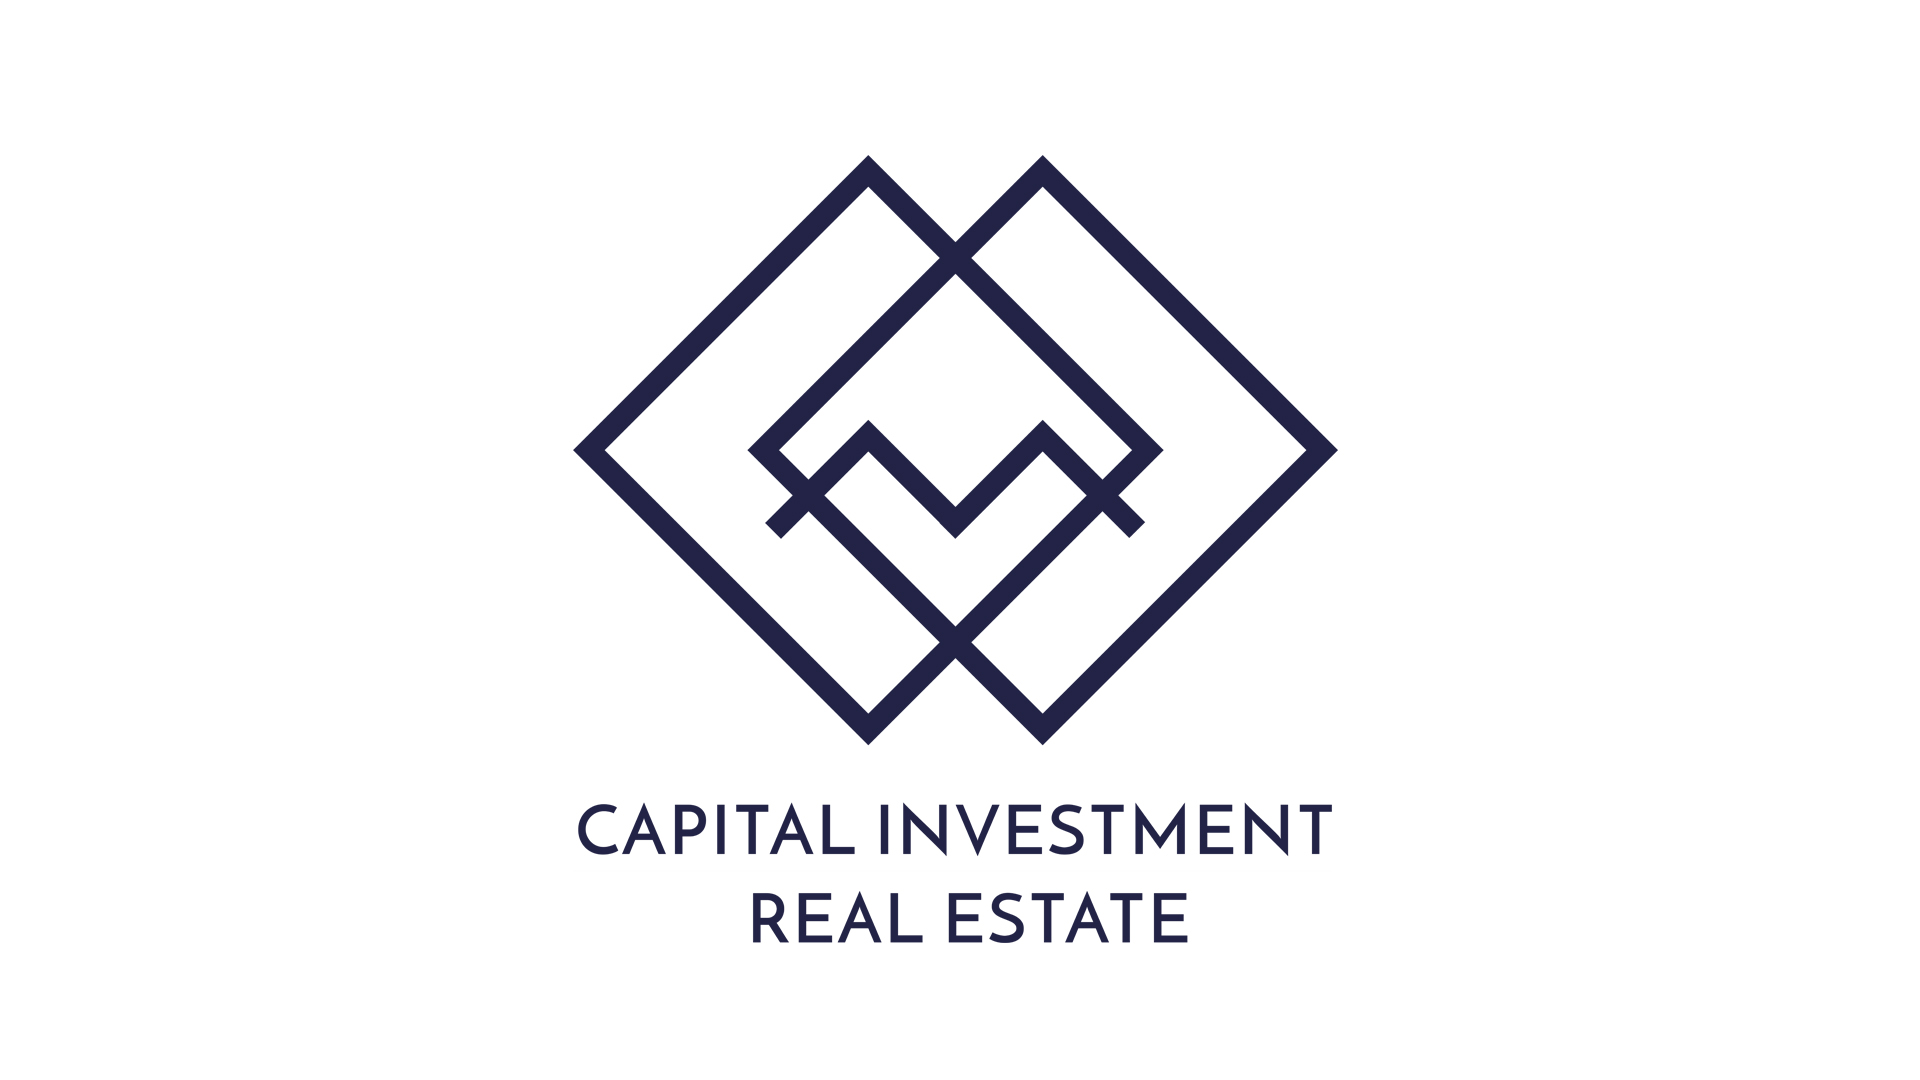 Capital Investment Logo - Capital Investment Real Estate